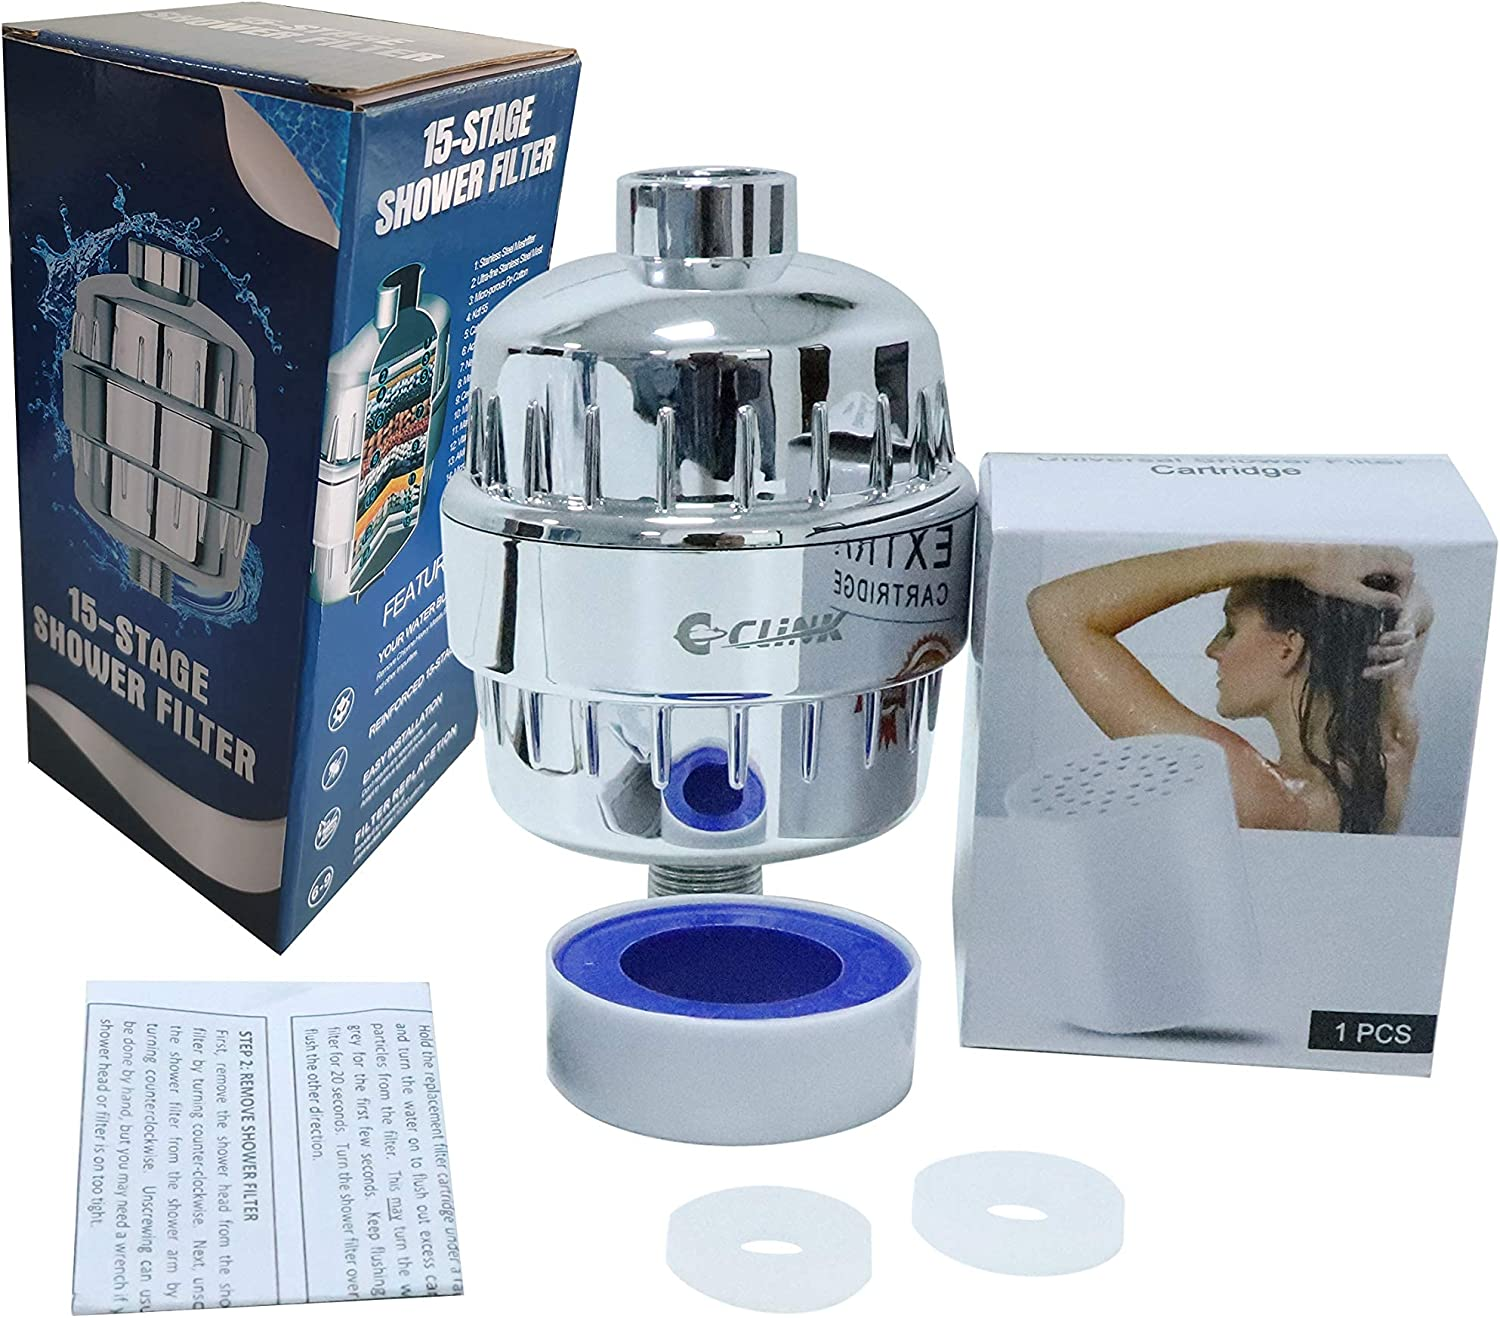 C CLINK 15 Stages Shower Water Filter Silver with Popular product surface layer Fort Worth Mall